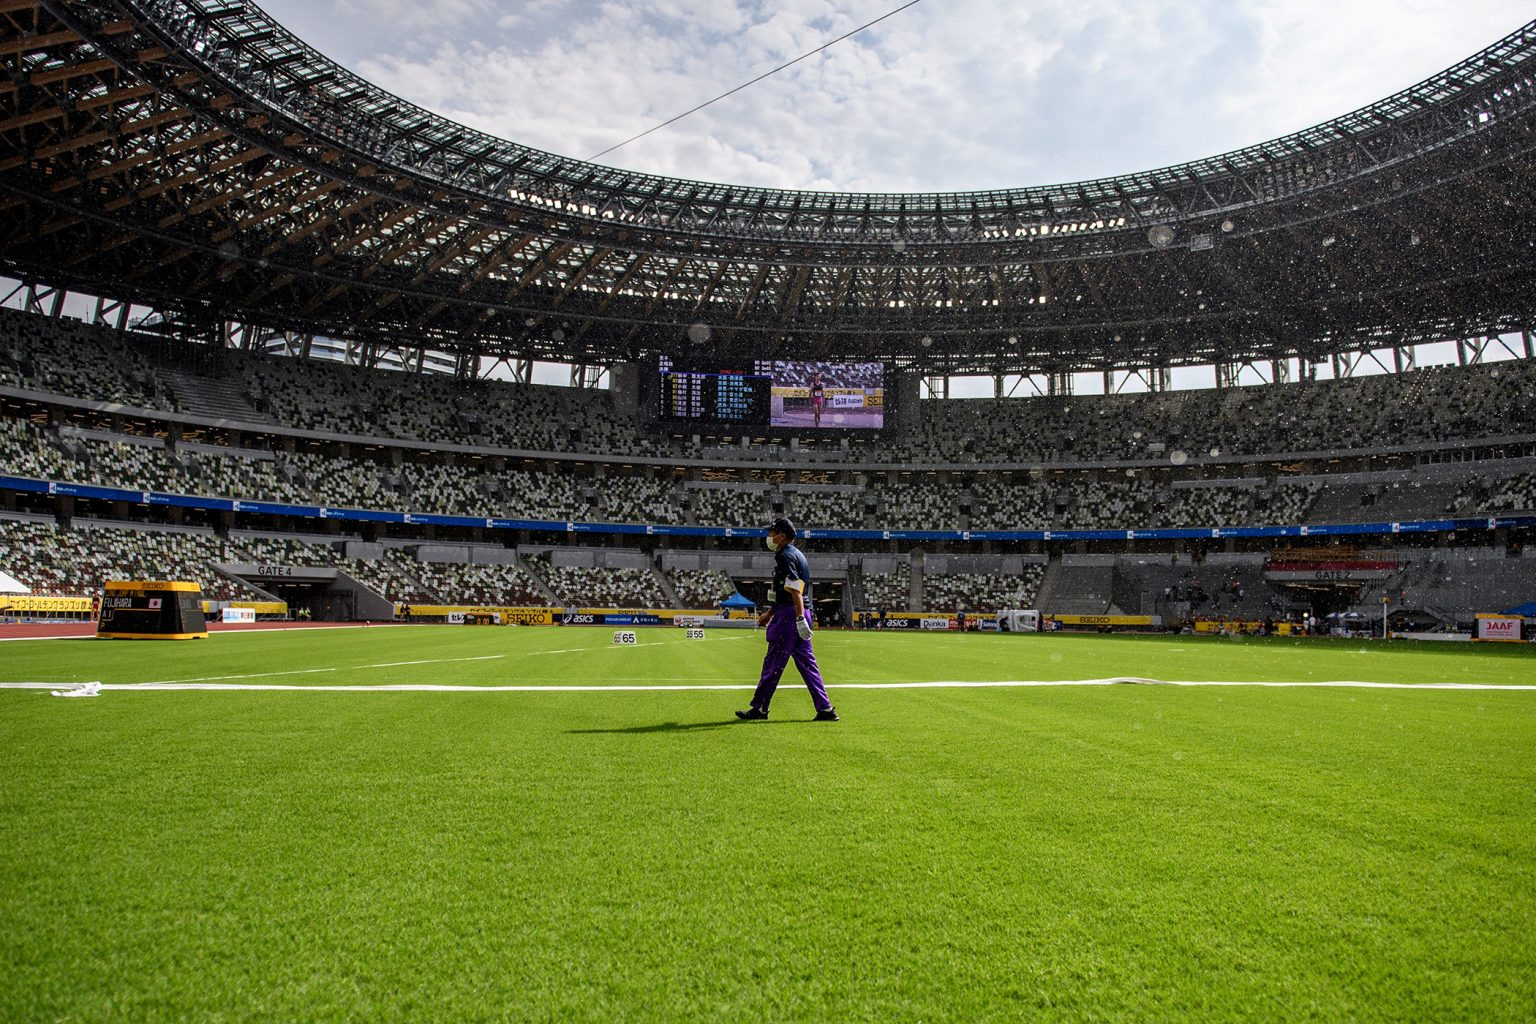 An official walks across the infield of the National Stadium in Tokyo, home of the 2020 Olympic Games. A UGA-bred grass will be used on the field